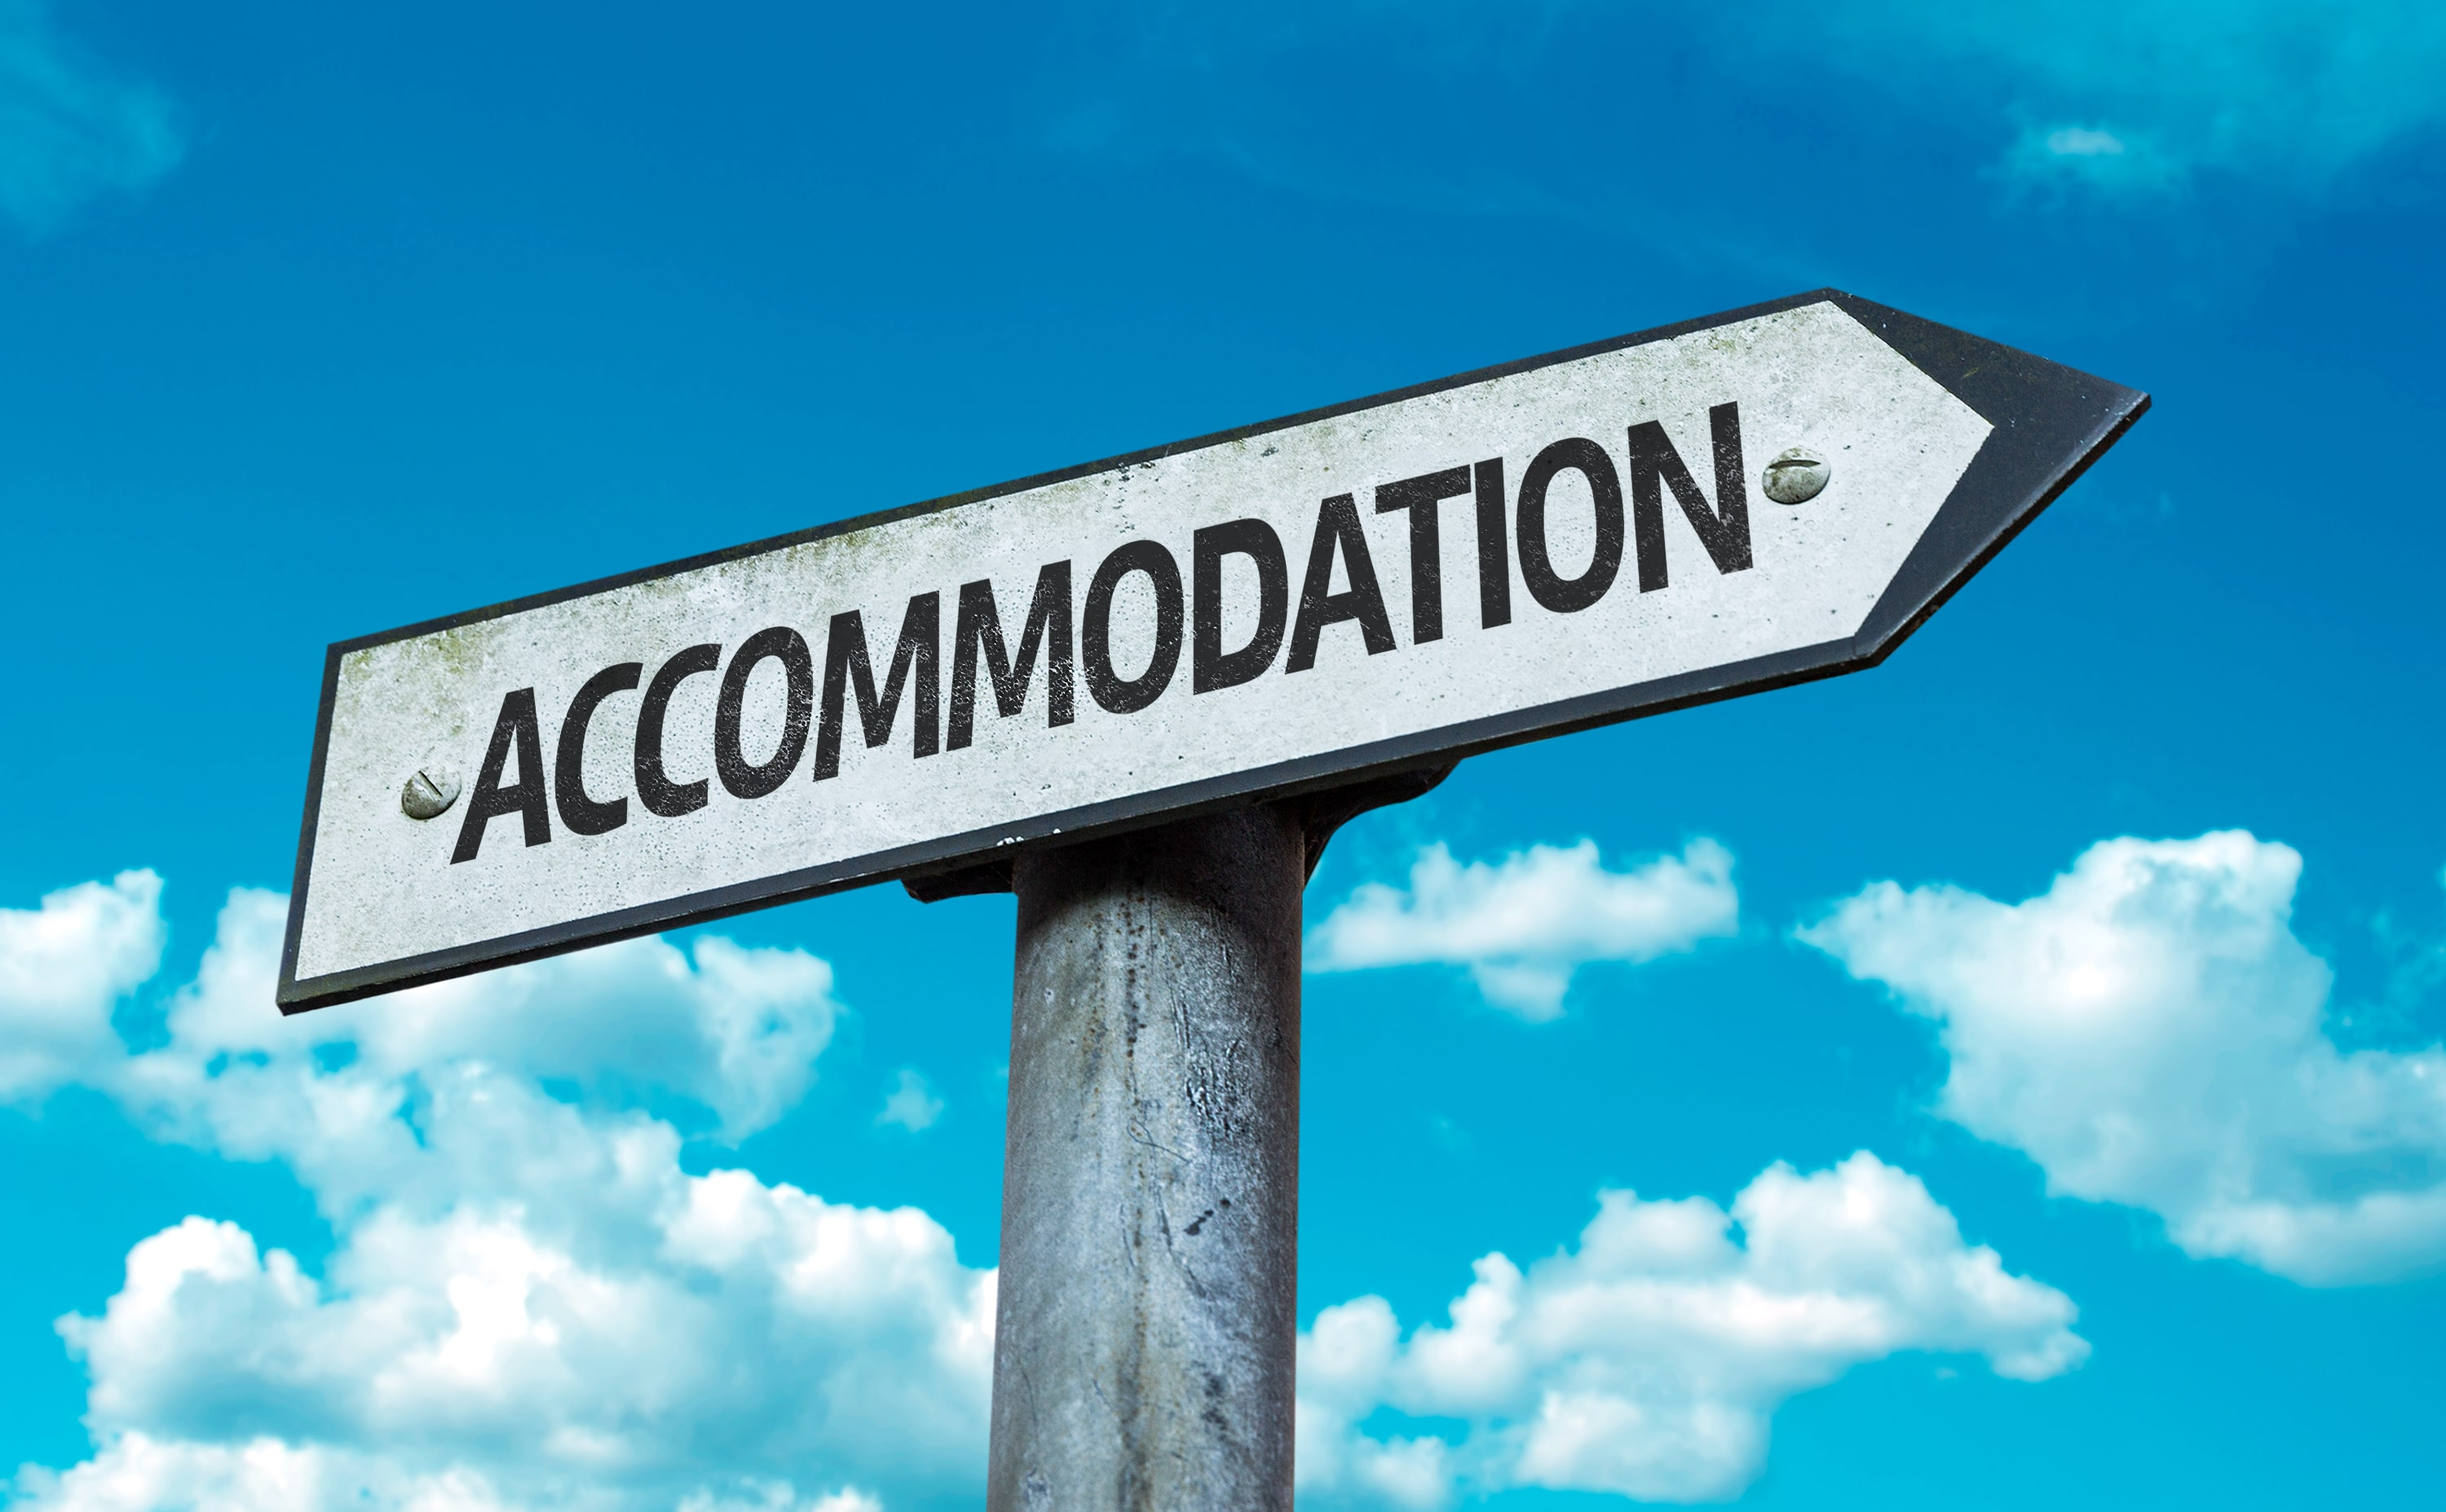 Accommodation-shutterstock-min